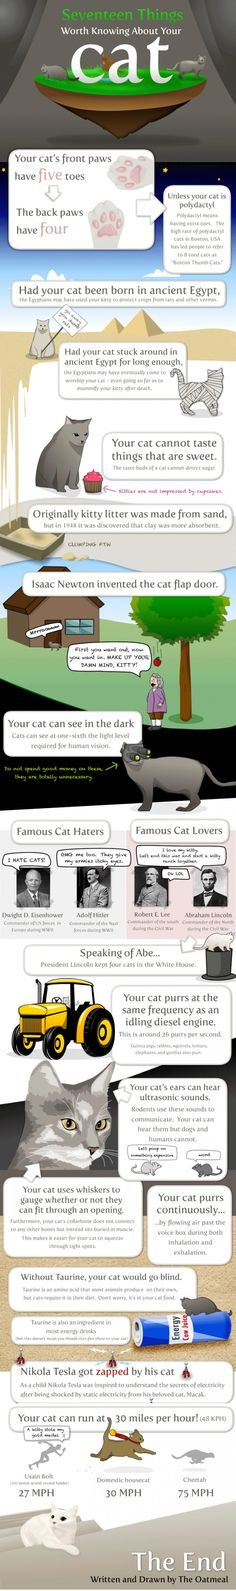 Posted in Cat Behavior 101 , Cats , Secrets of Cats #facts - More info about cat at Catsincare.com!